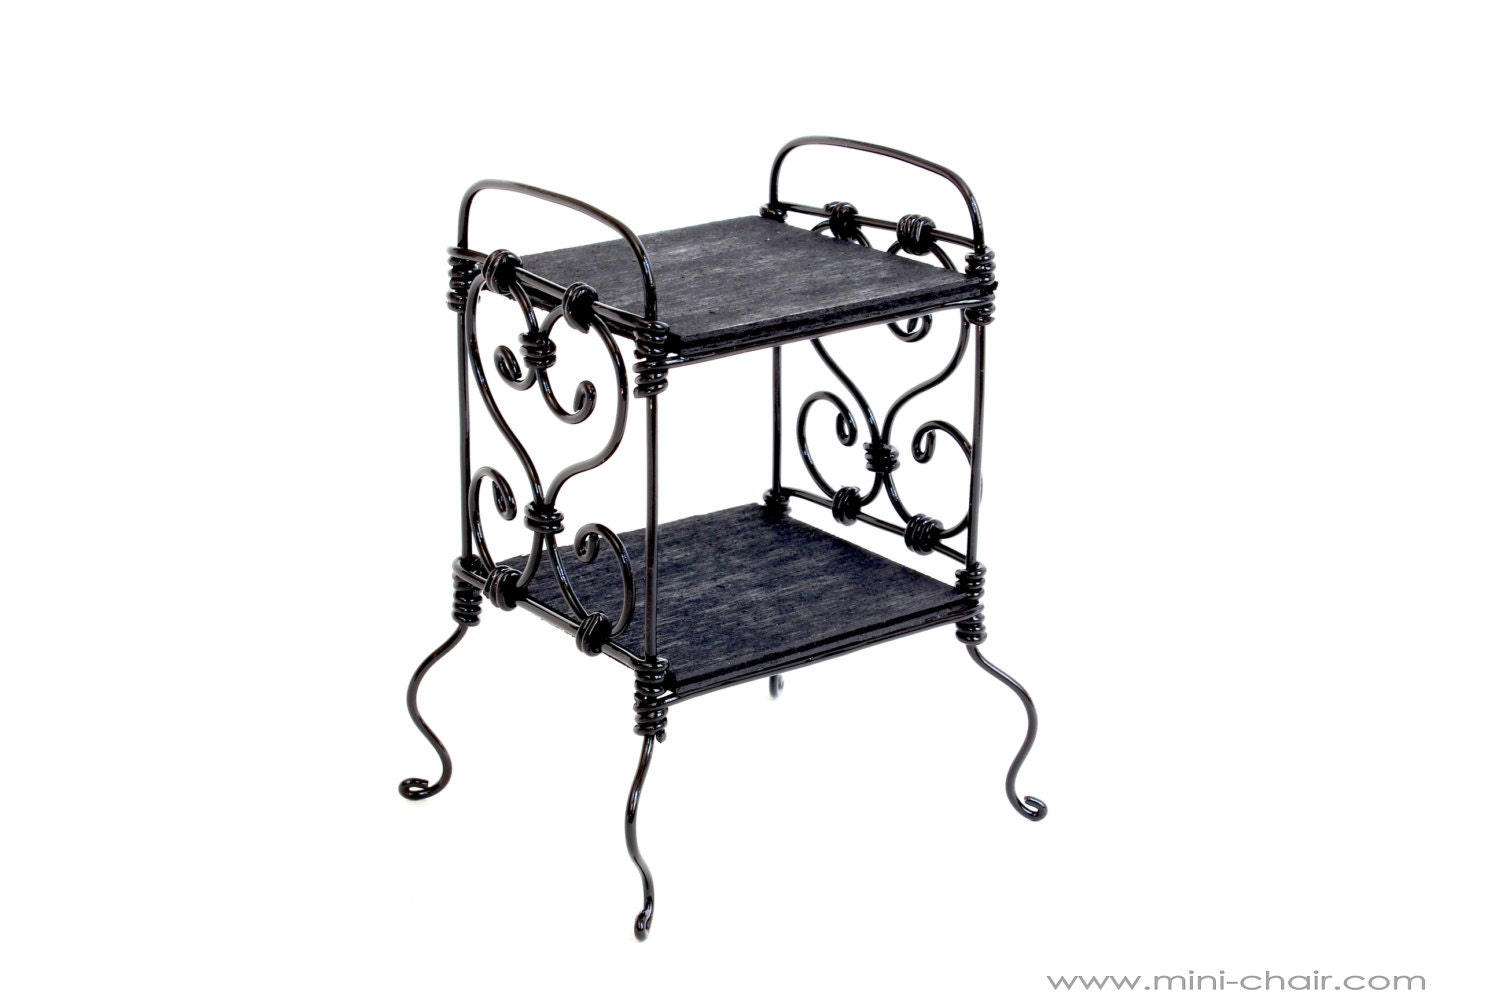 1/6 Scale Bedside Table/ Nightstand Wrought Iron Black